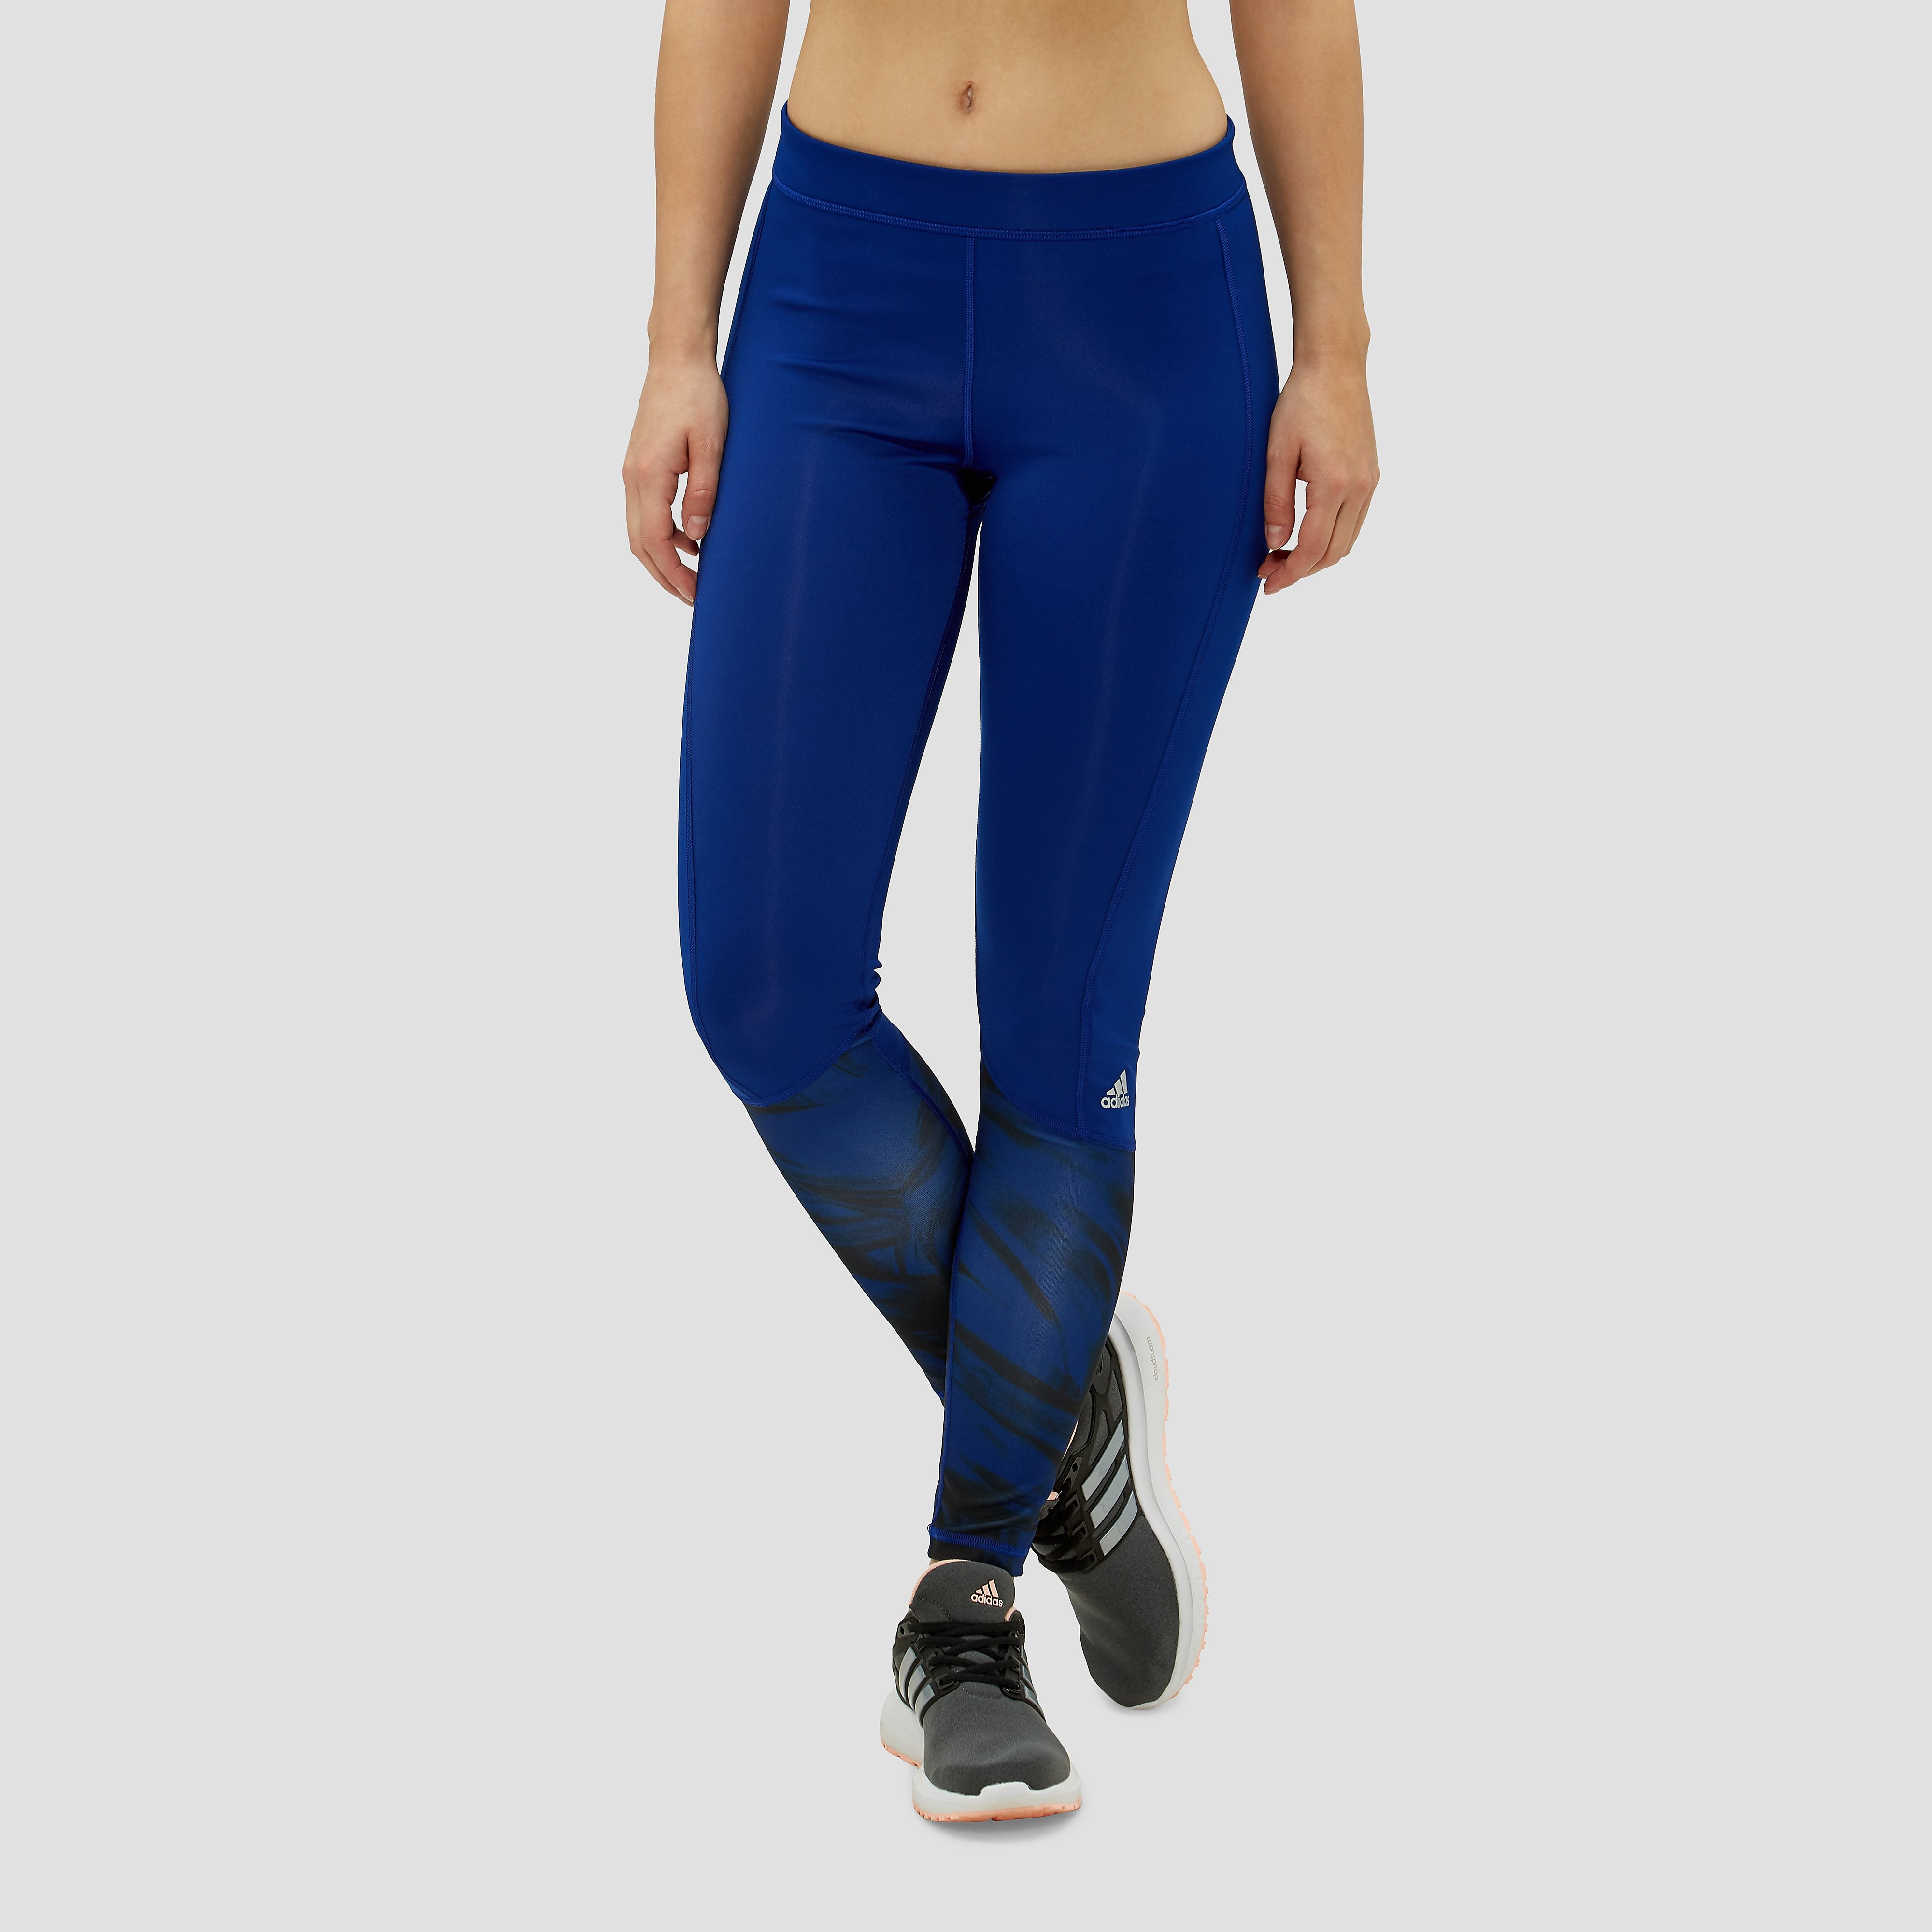 ADIDAS TECHFIT TIGHT BLAUW DAMES